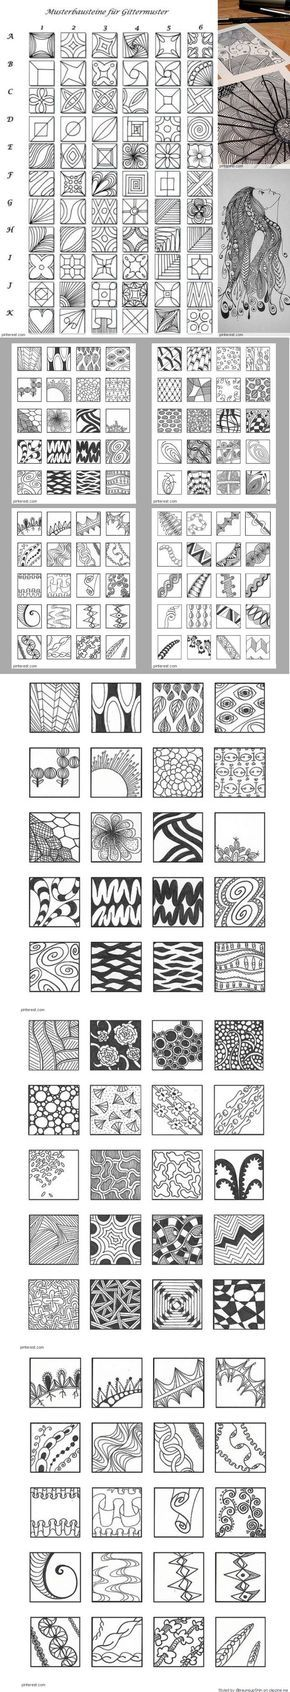 Creative Doodling: a Ton of Zentangle Patterns. Zendoodle Doodle Art Tangle patterns Pen & Ink drawing